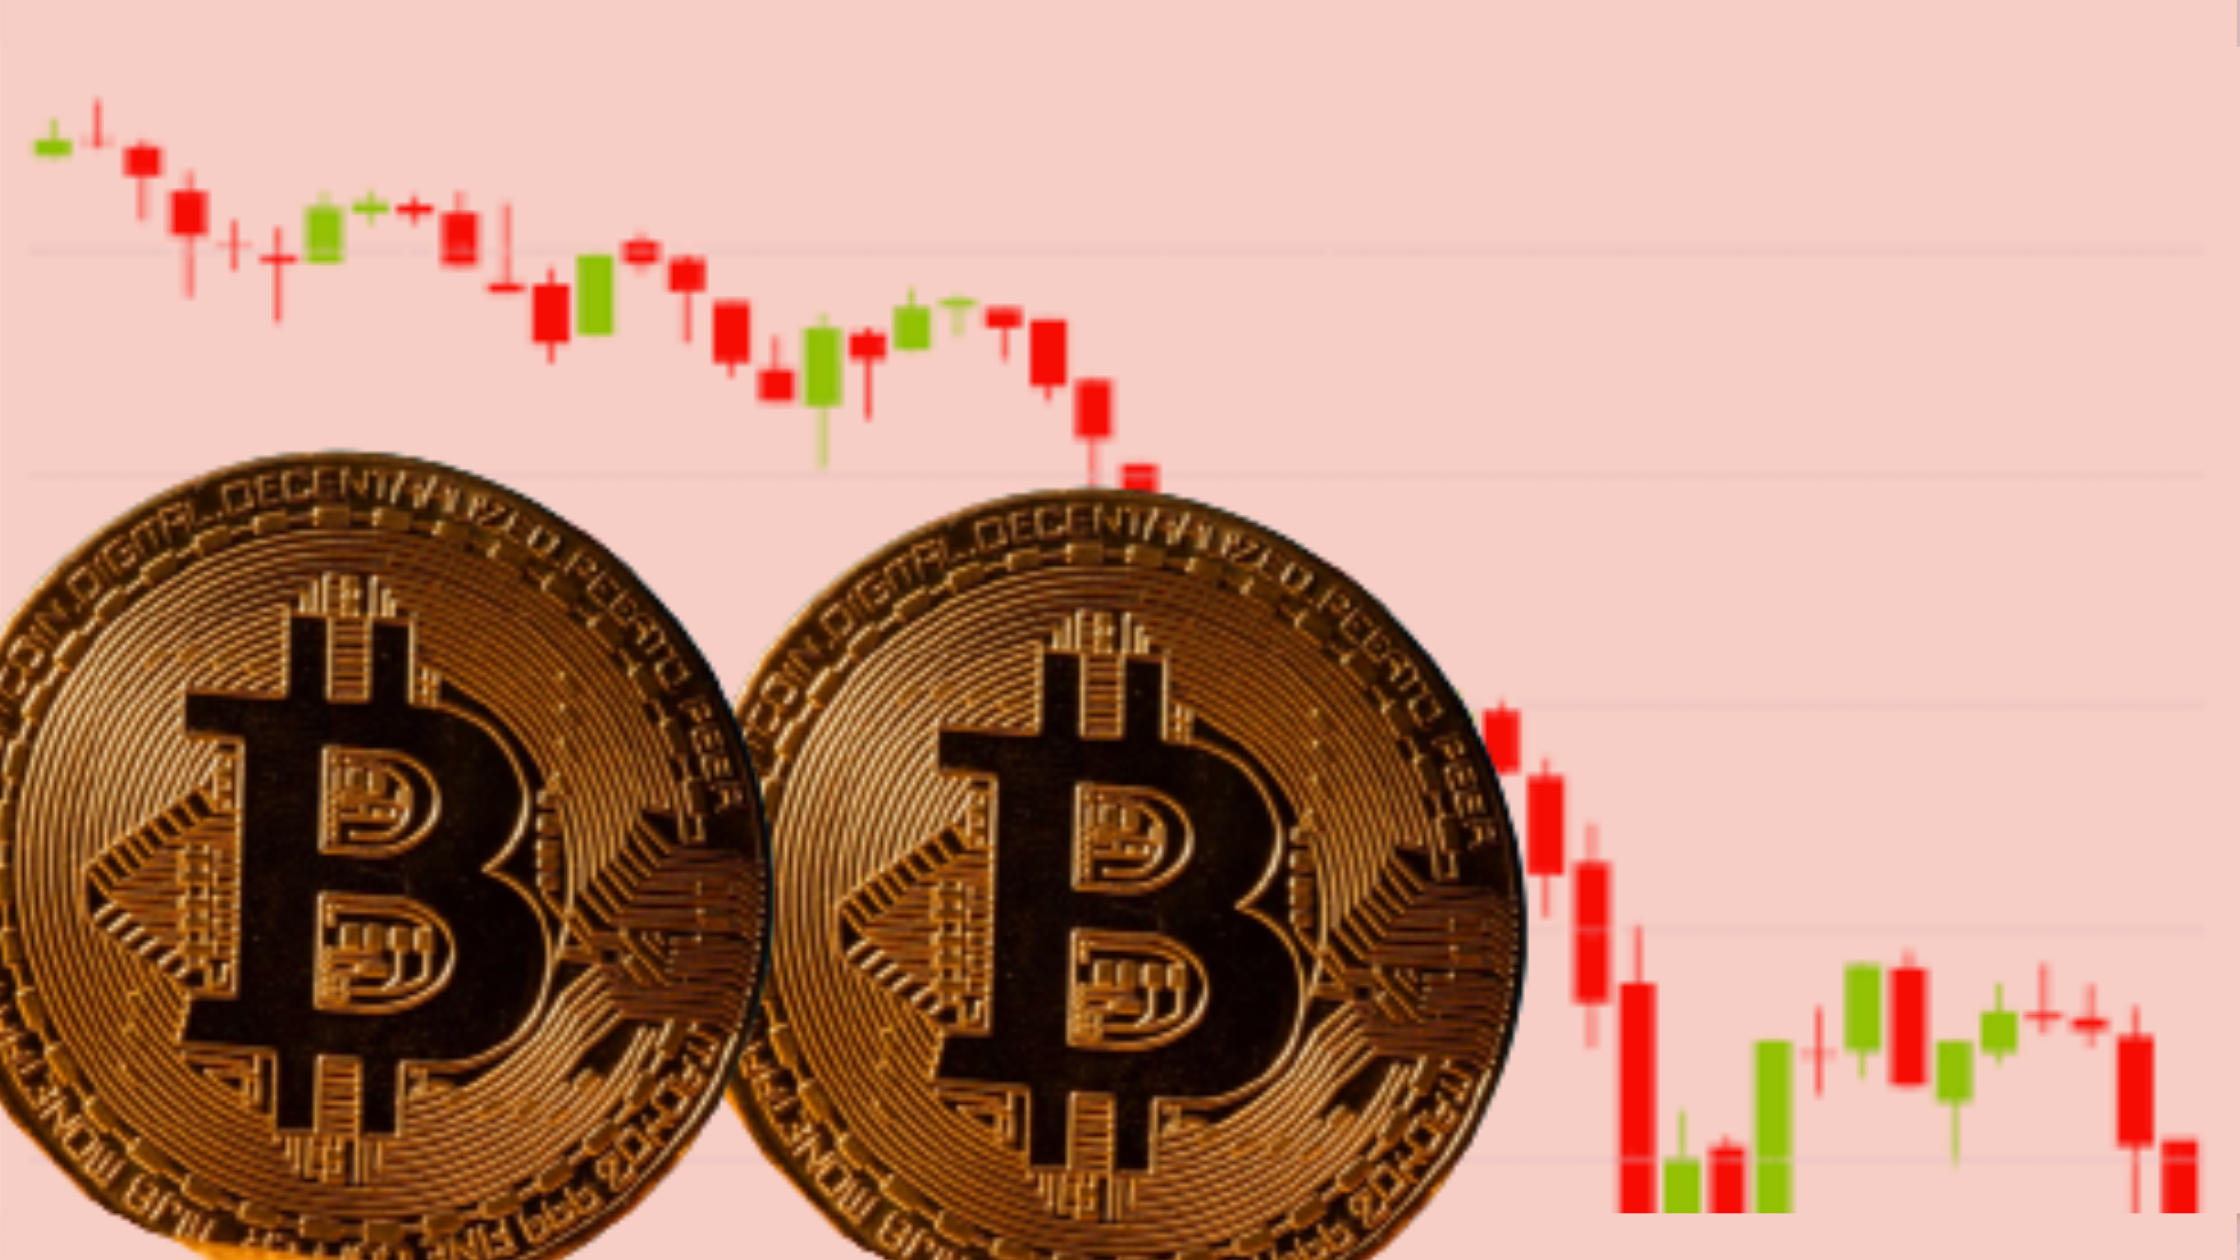 How To Deal With Losing Money To Cryptocurrency